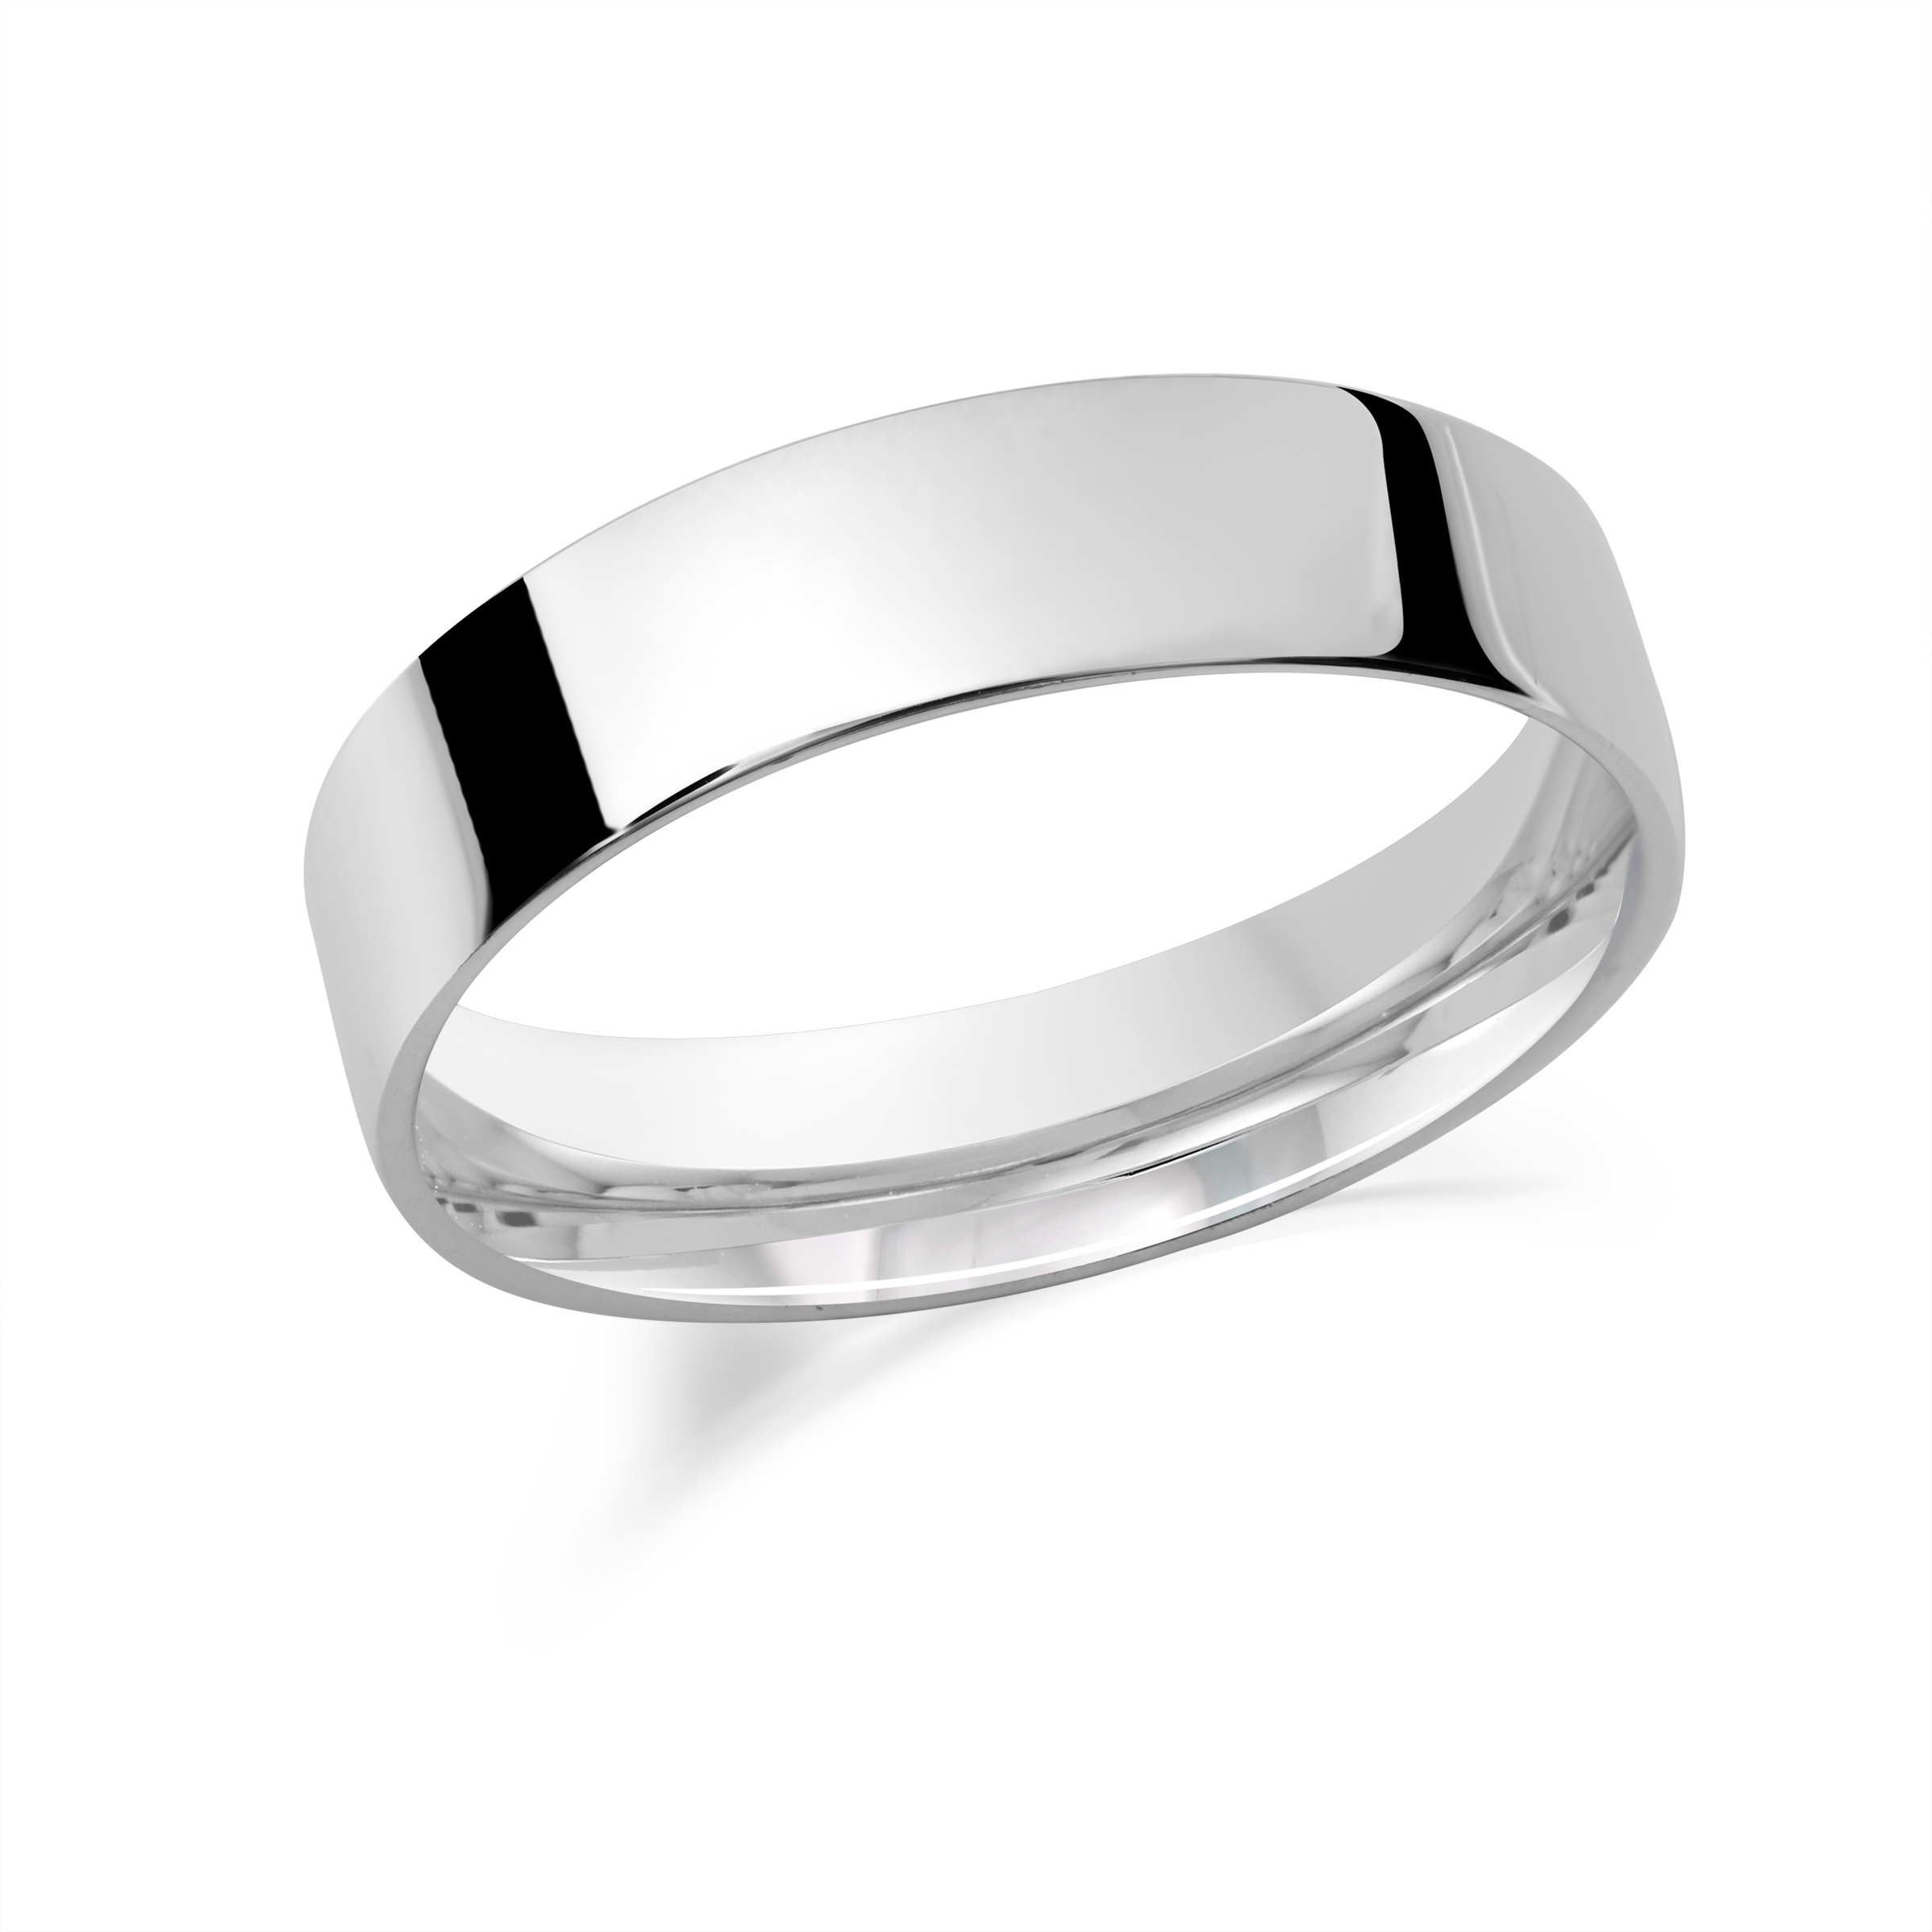 Flat sterling silver band